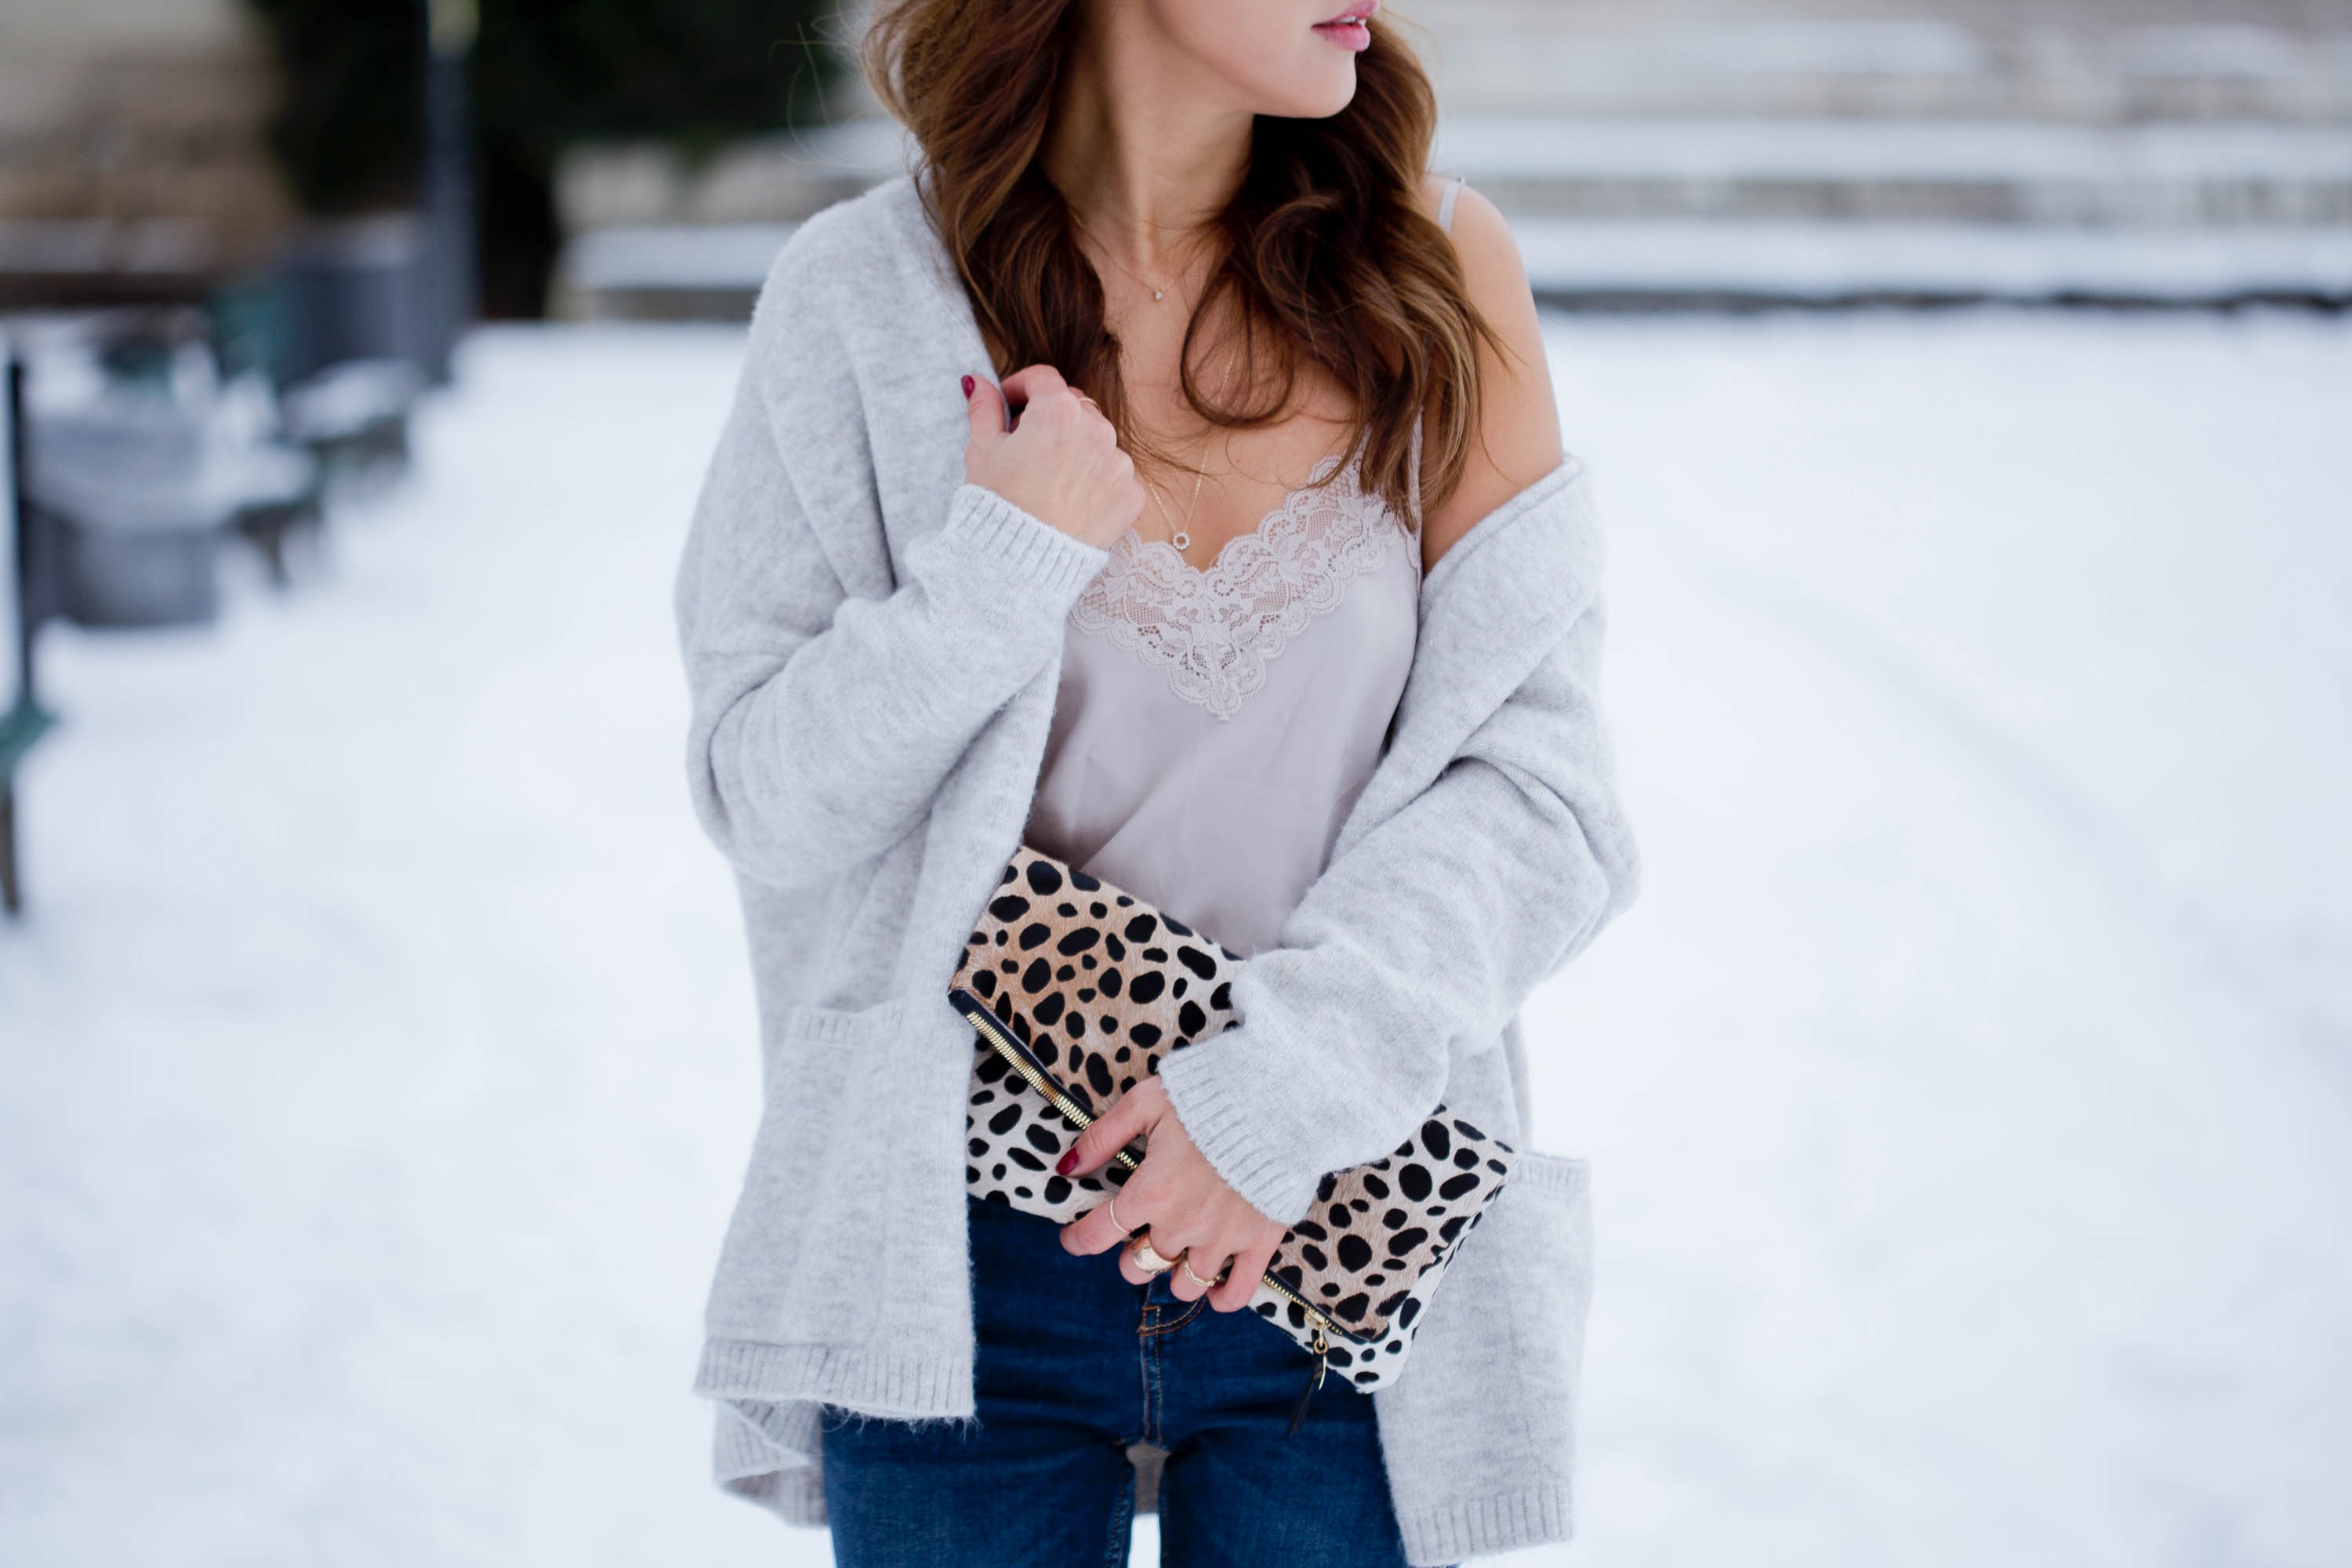 theclassycloud-shearling-jacket-camisole-winter-outfit (4 von 6)